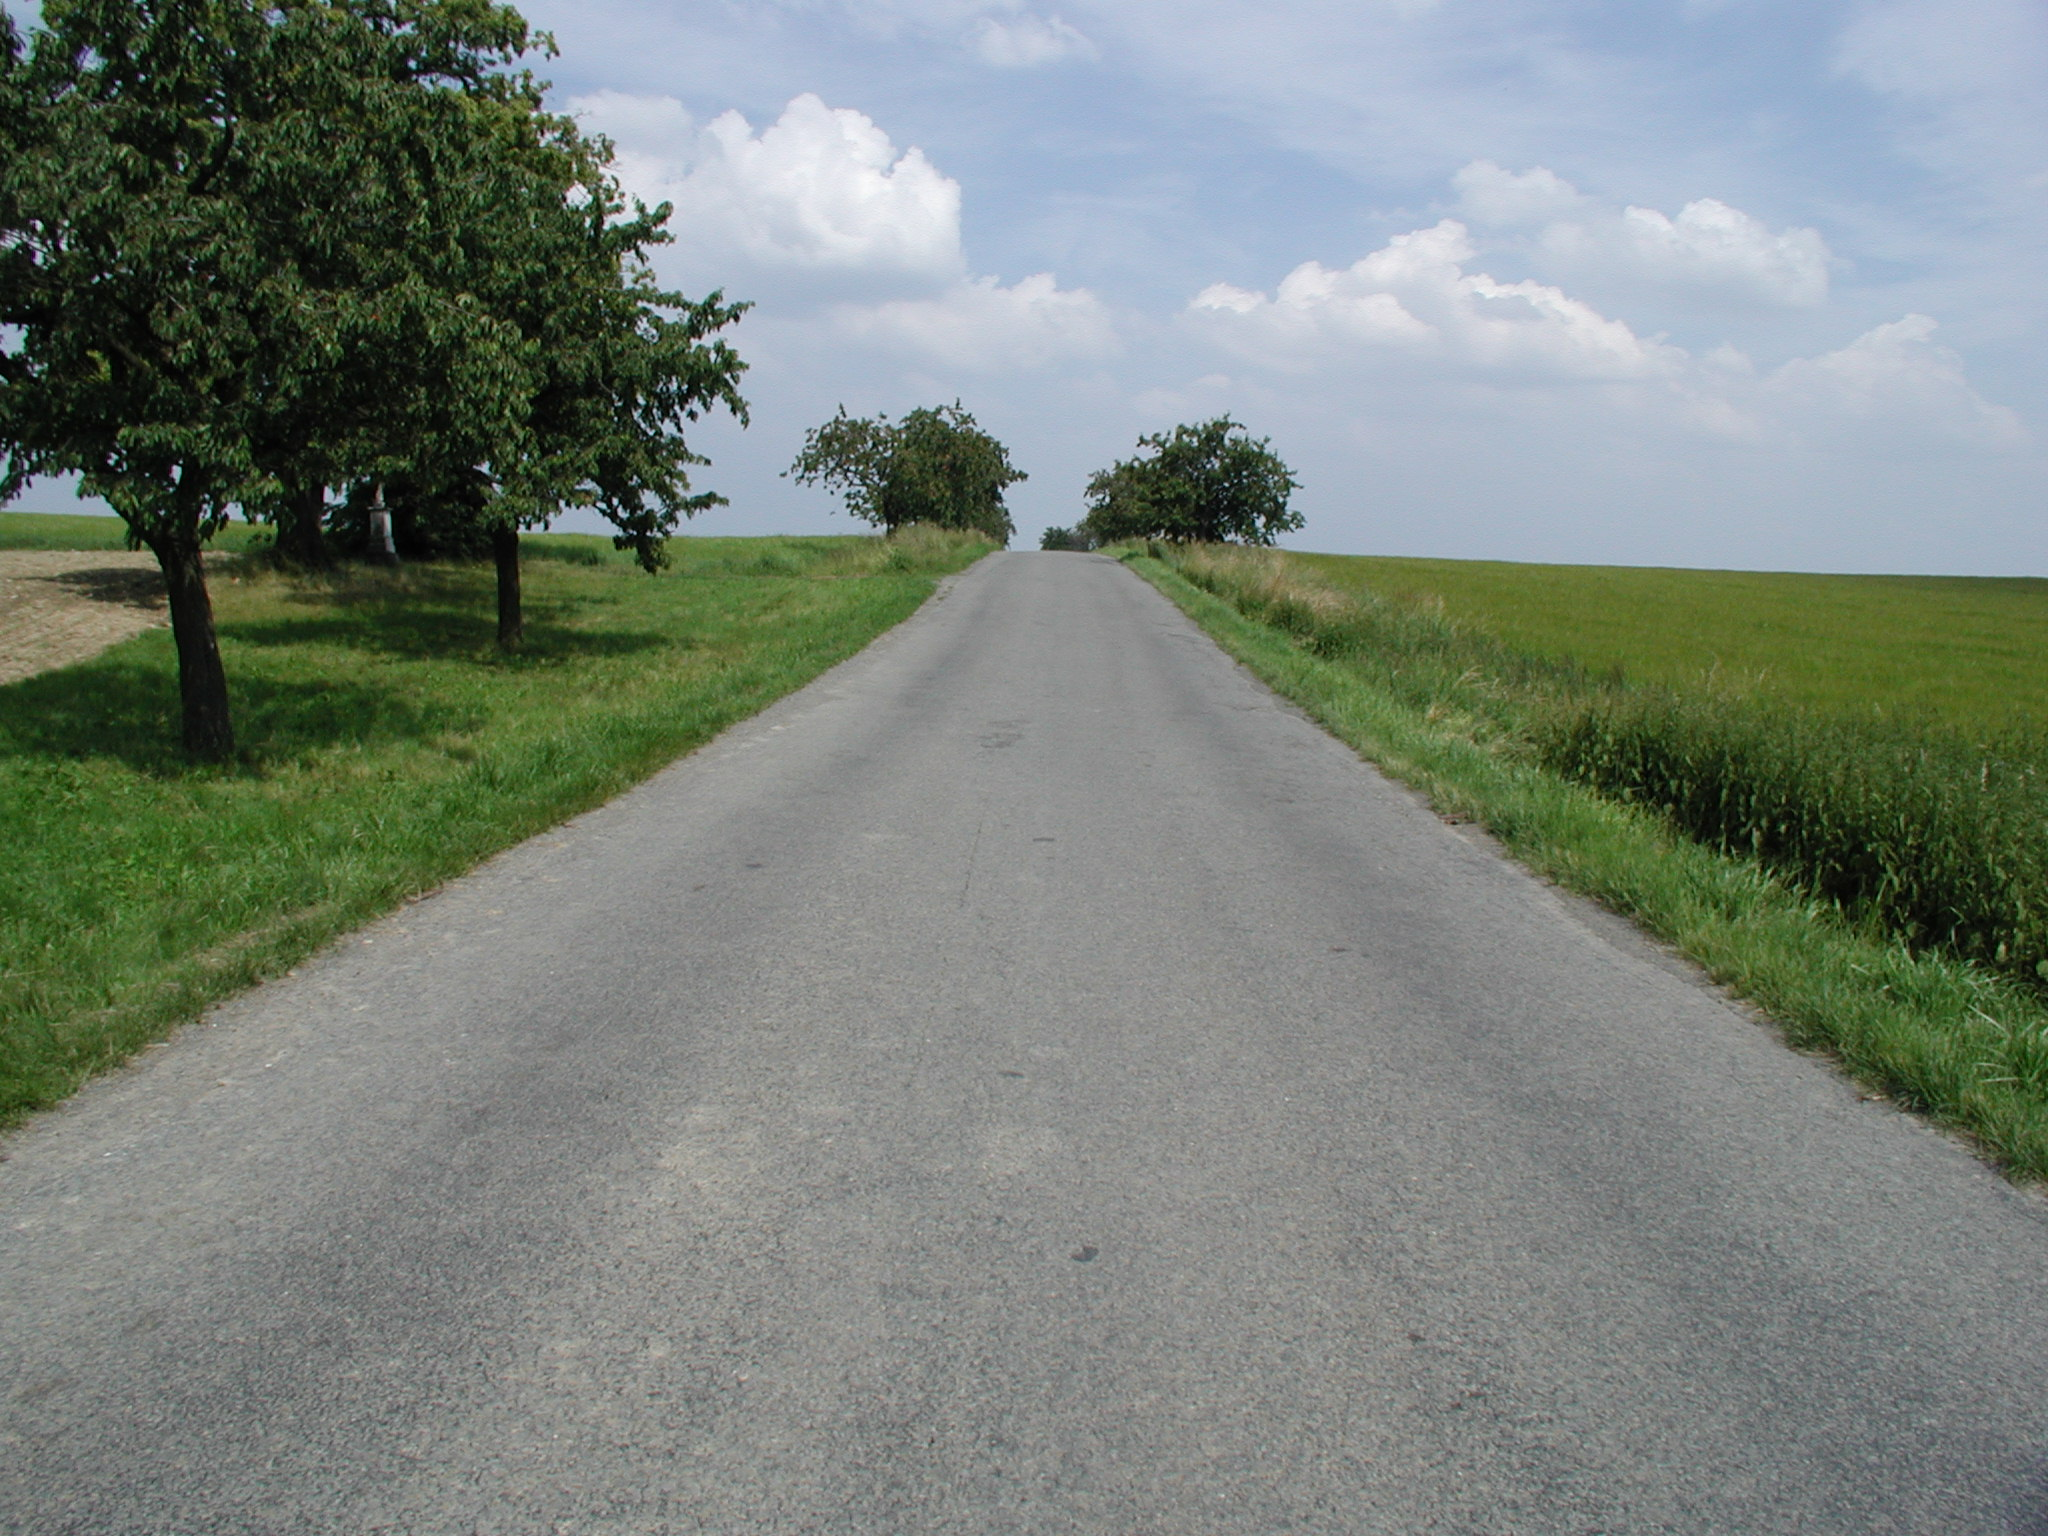 11 Long Roads Stock Photography Images